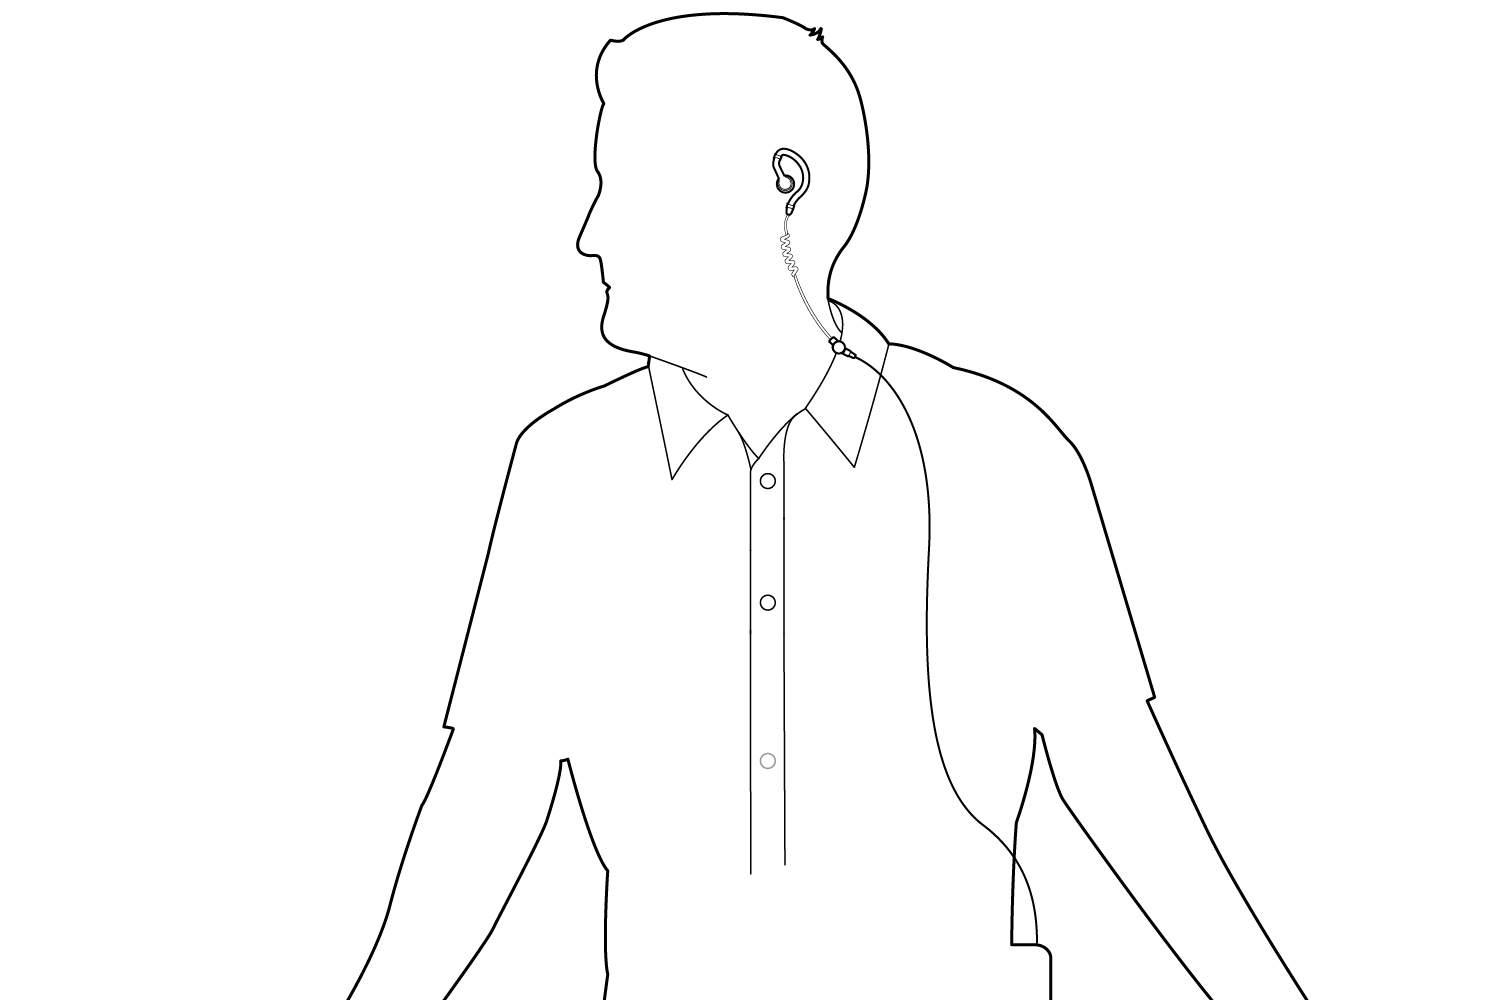 Wearing With Device on Belt Diagram